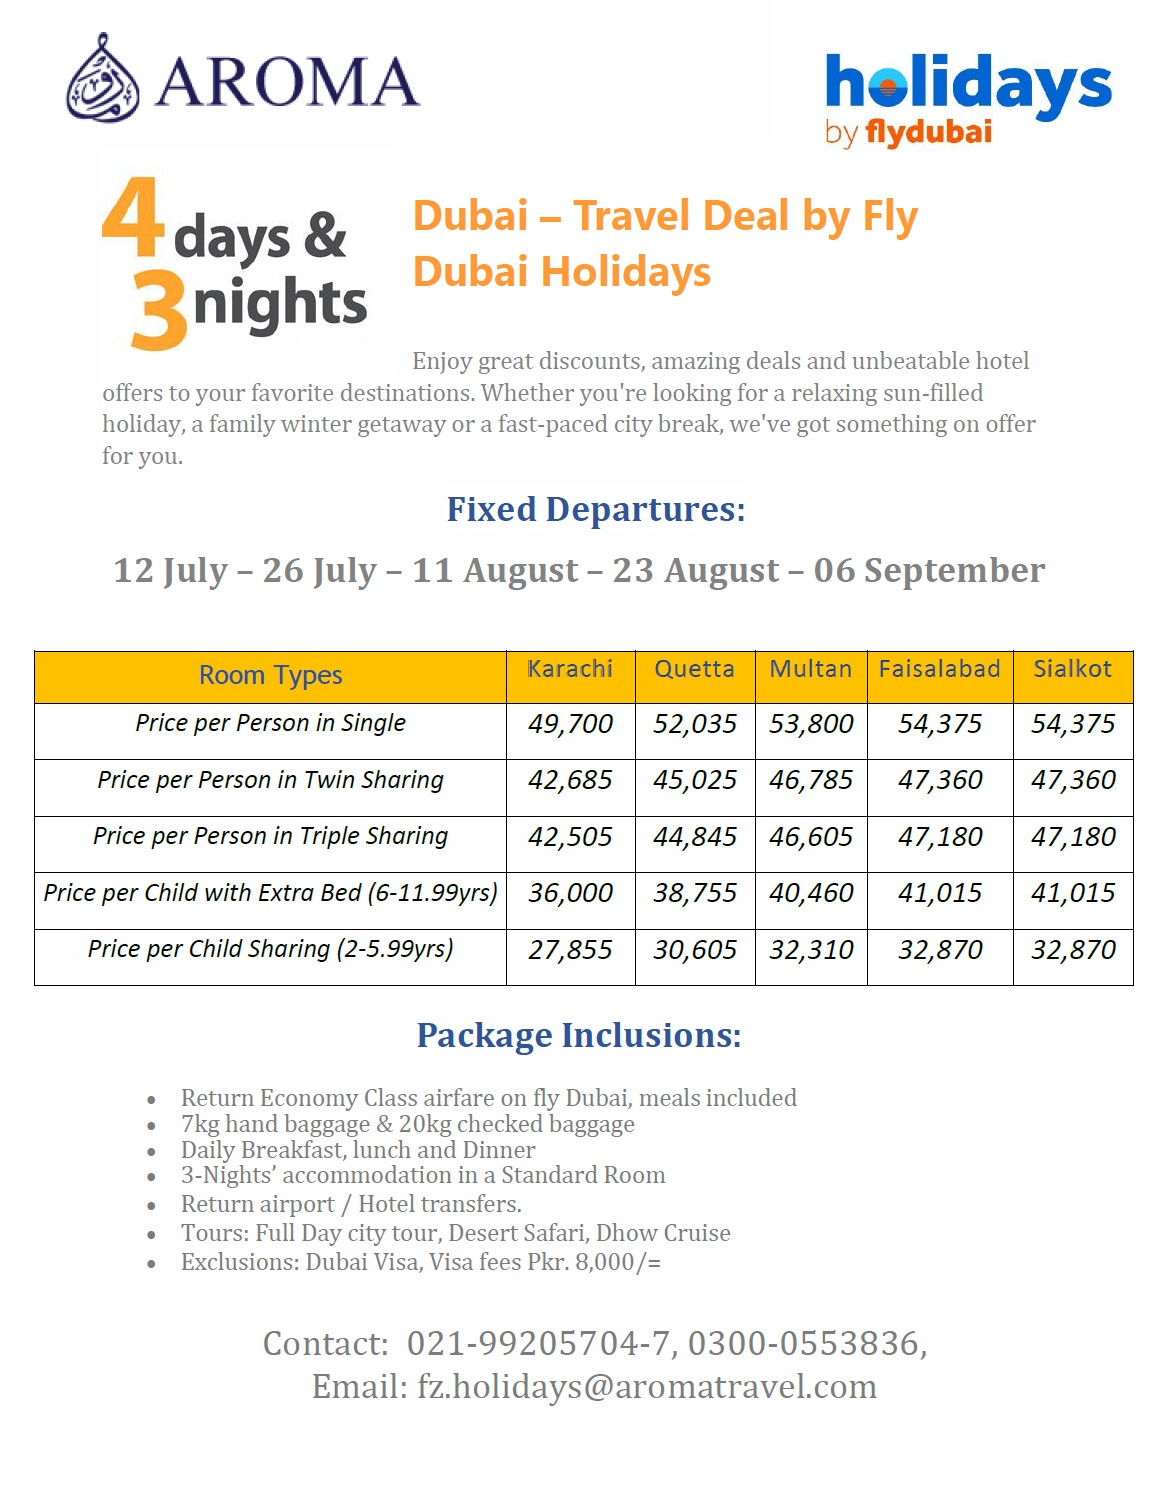 Aroma Travel Services Dubai Travel Deal By Fly Dubai Holidays Aroma Travel Services